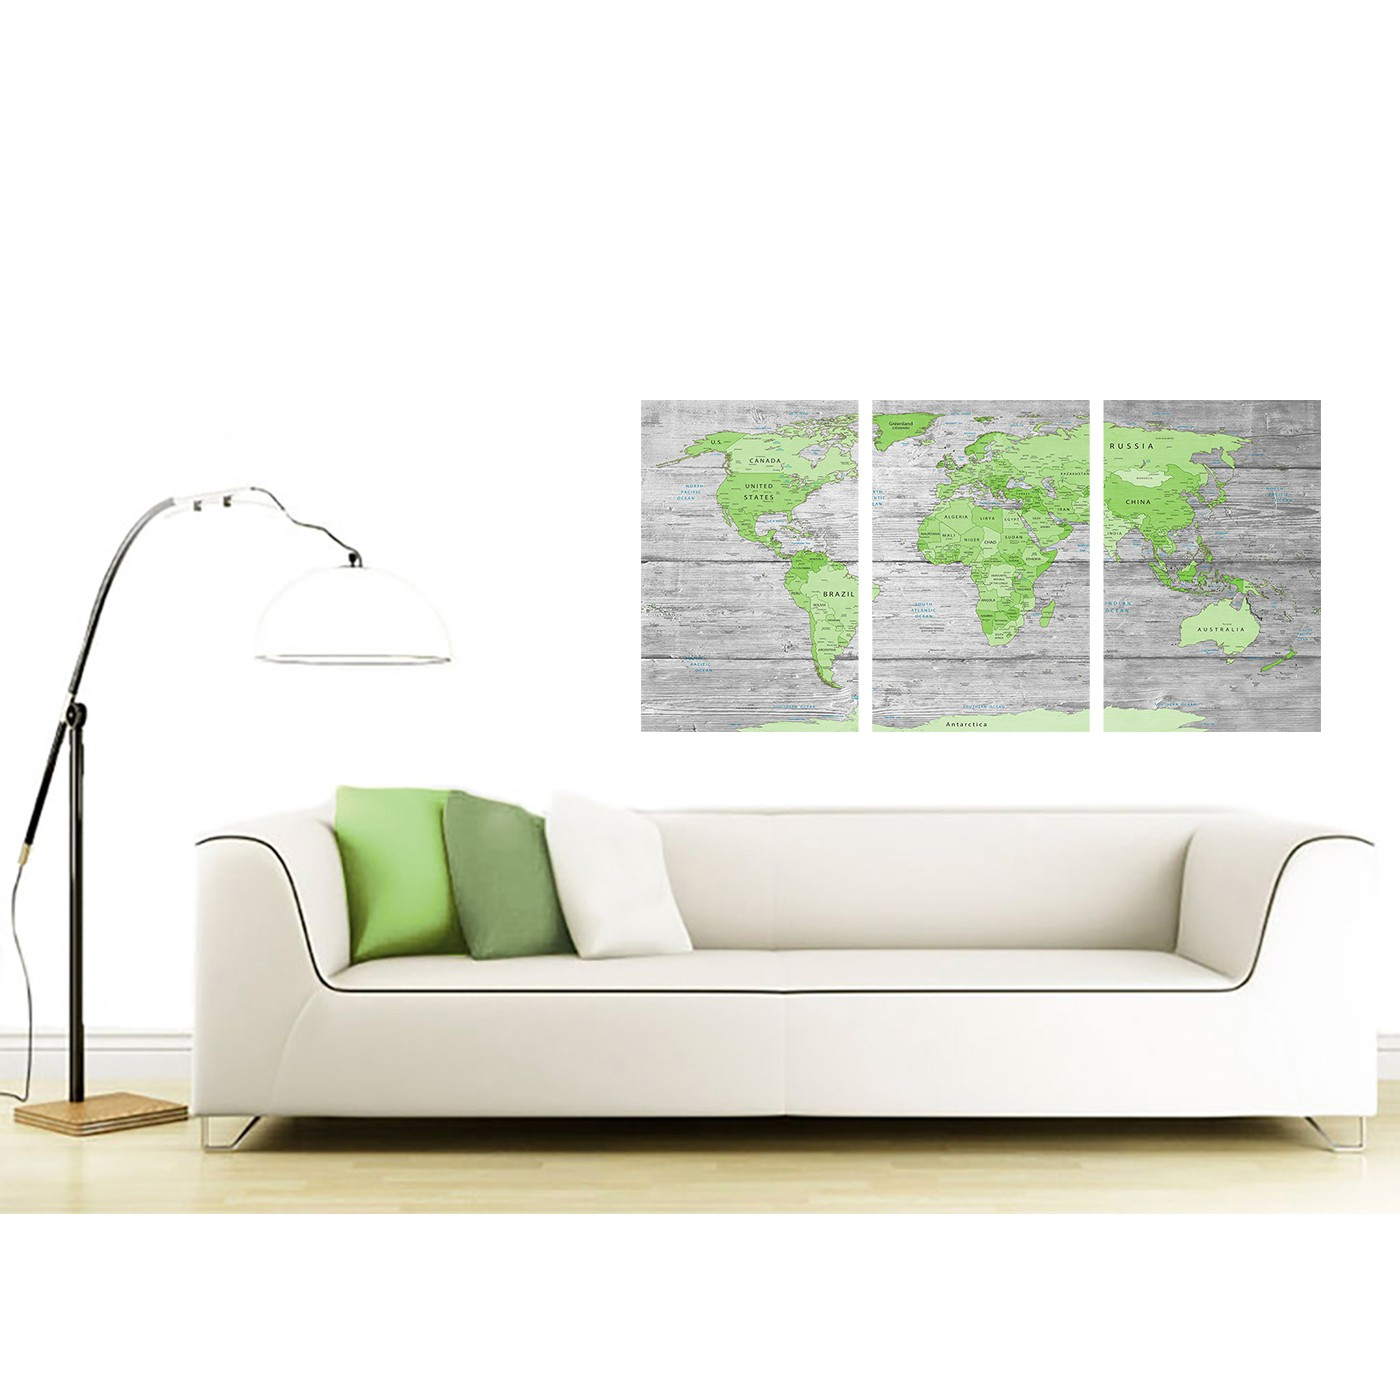 Large lime green grey world map atlas canvas wall art print display gallery item 3 contemporary green grey large lime green grey world map atlas canvas wall art print maps canvas display gallery item 4 gumiabroncs Choice Image